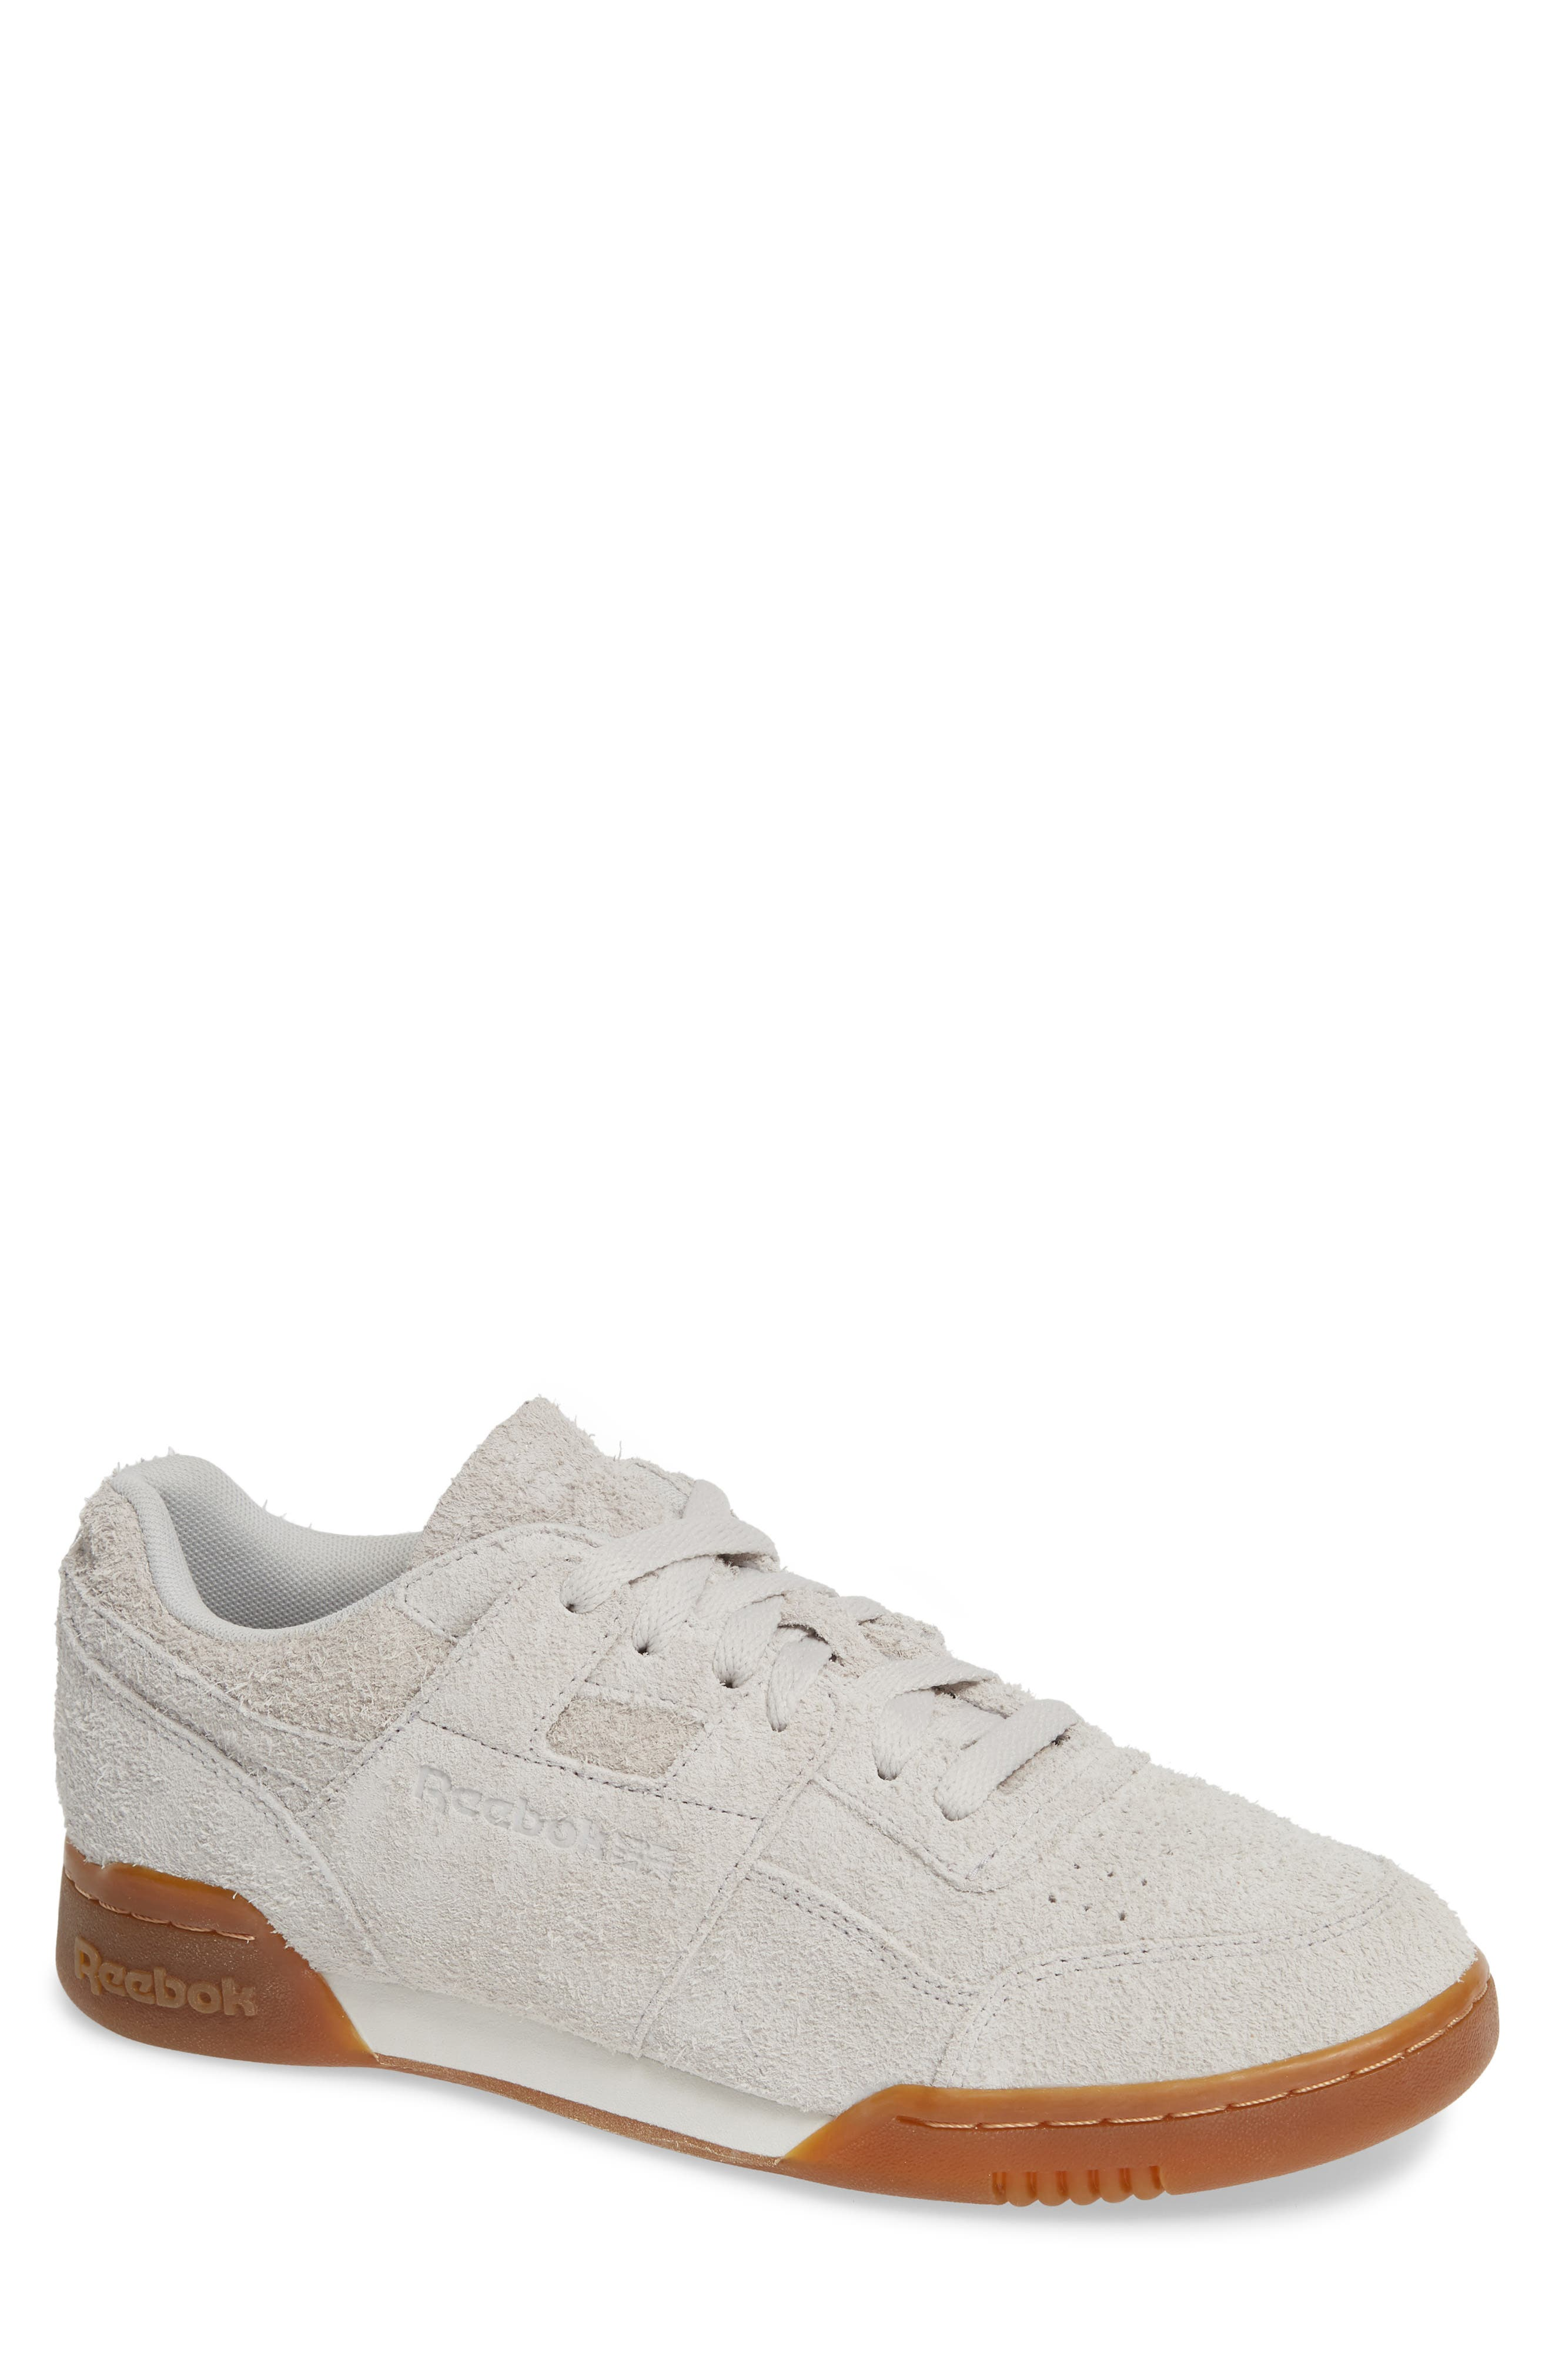 Men'S Workout Plus Suede Low-Top Sneakers in Grey/ White/ Gum